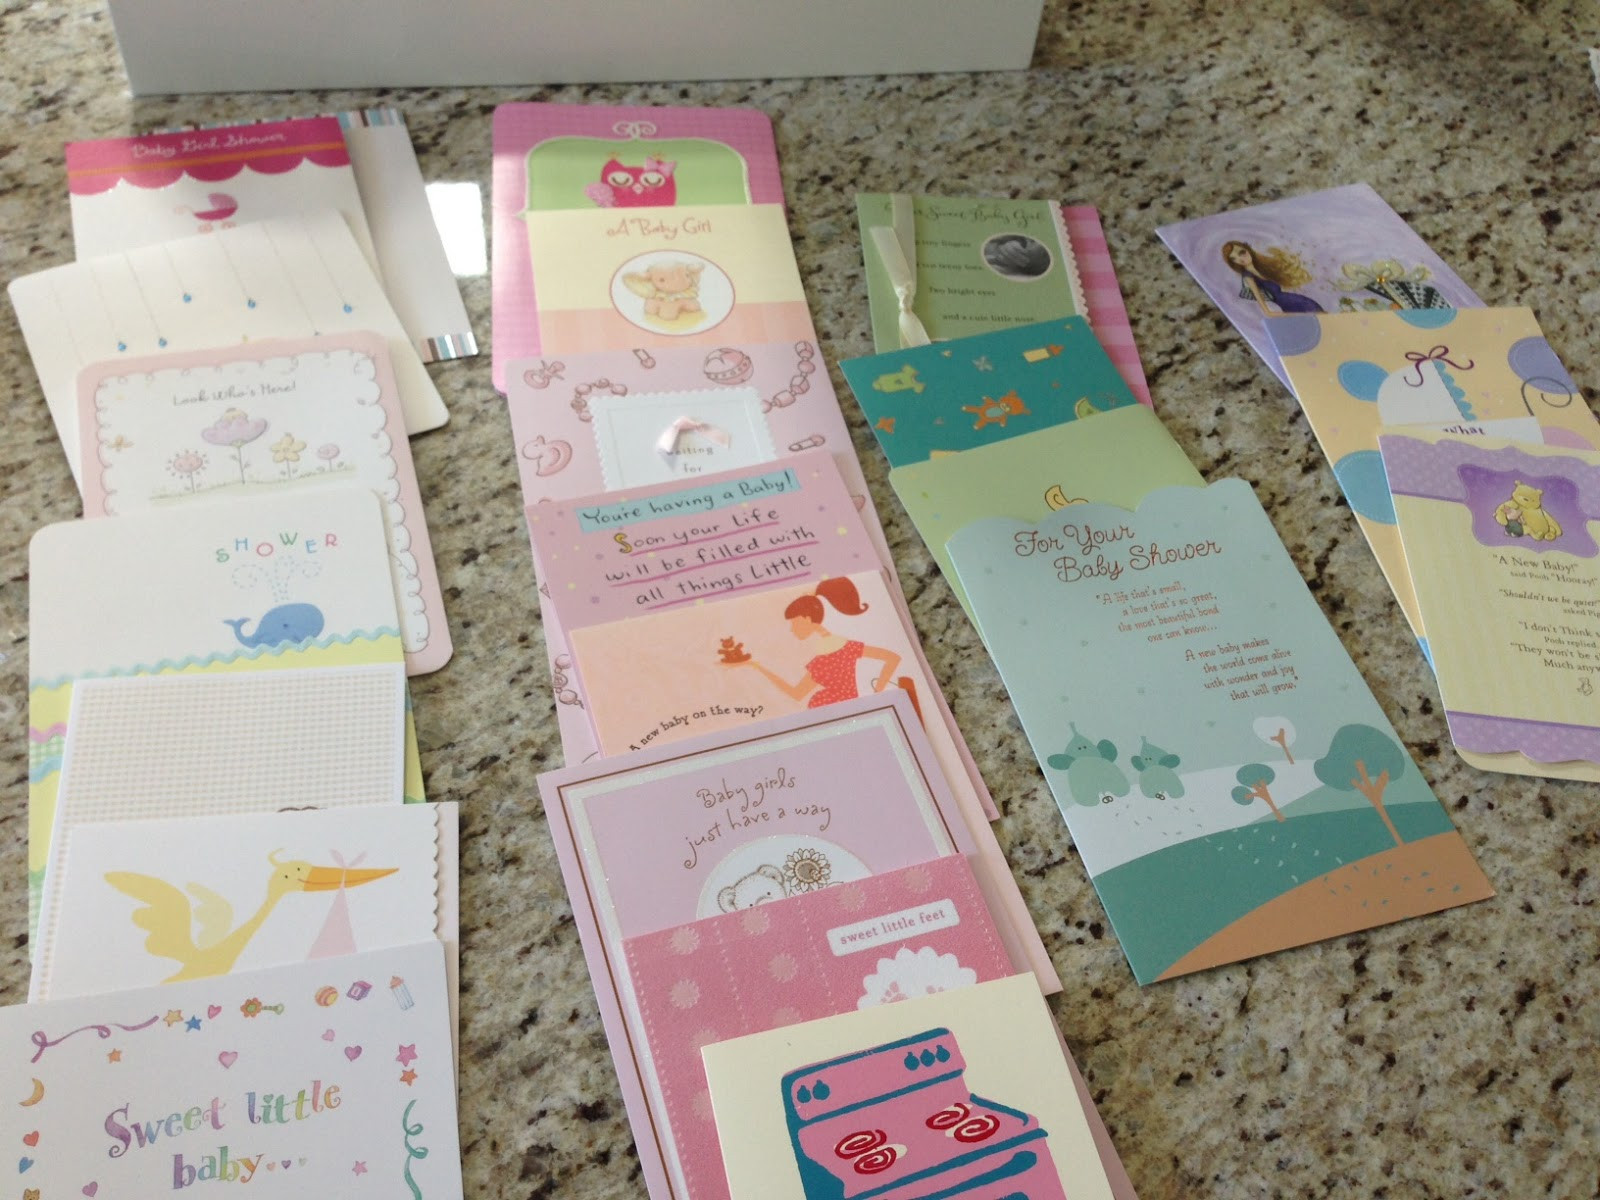 Best ideas about DIY Baby Shower Cards . Save or Pin Veronika s Blushing DIY Transform Your Baby Shower Cards Now.